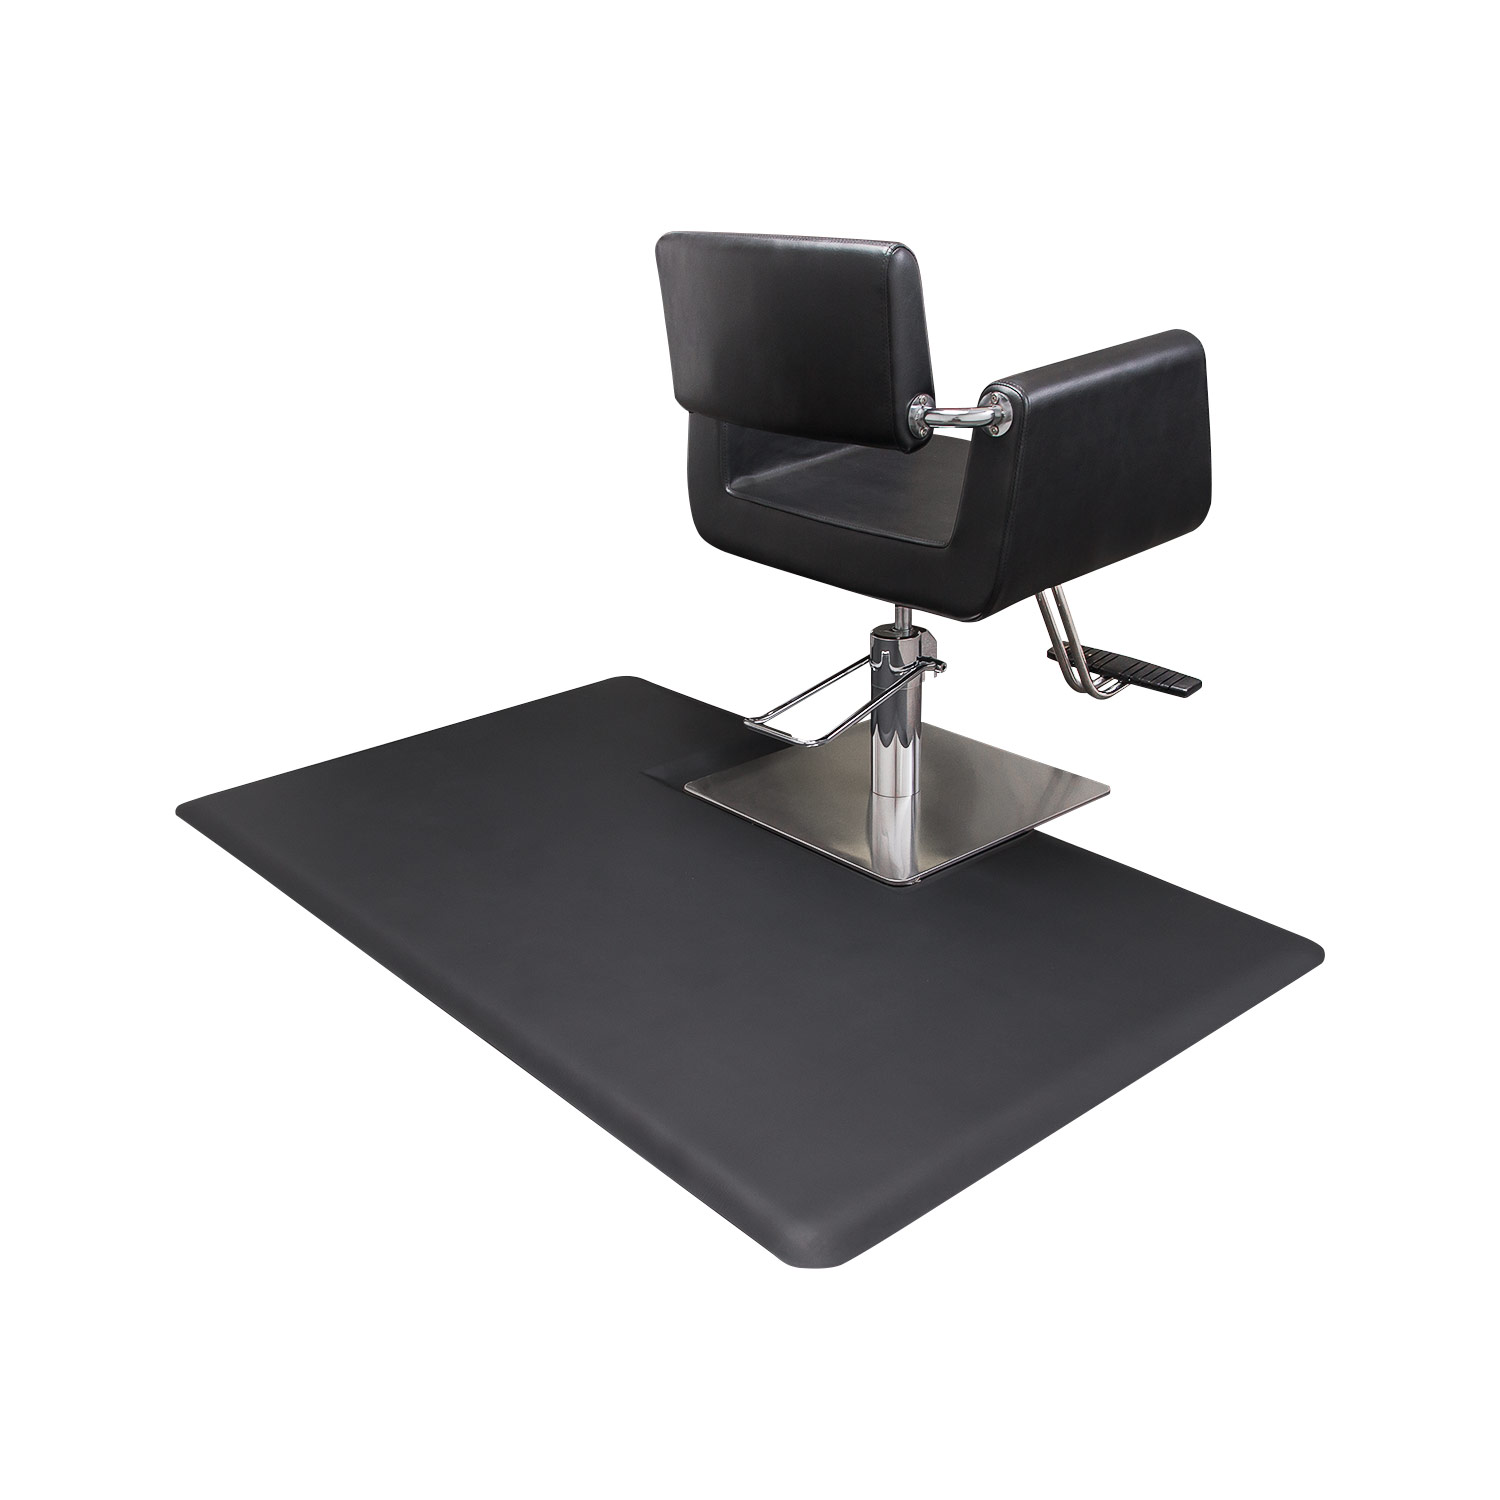 Rectangular 3x5 Anti-Fatigue Salon Chair Mat With Square Impression alternative product image 3